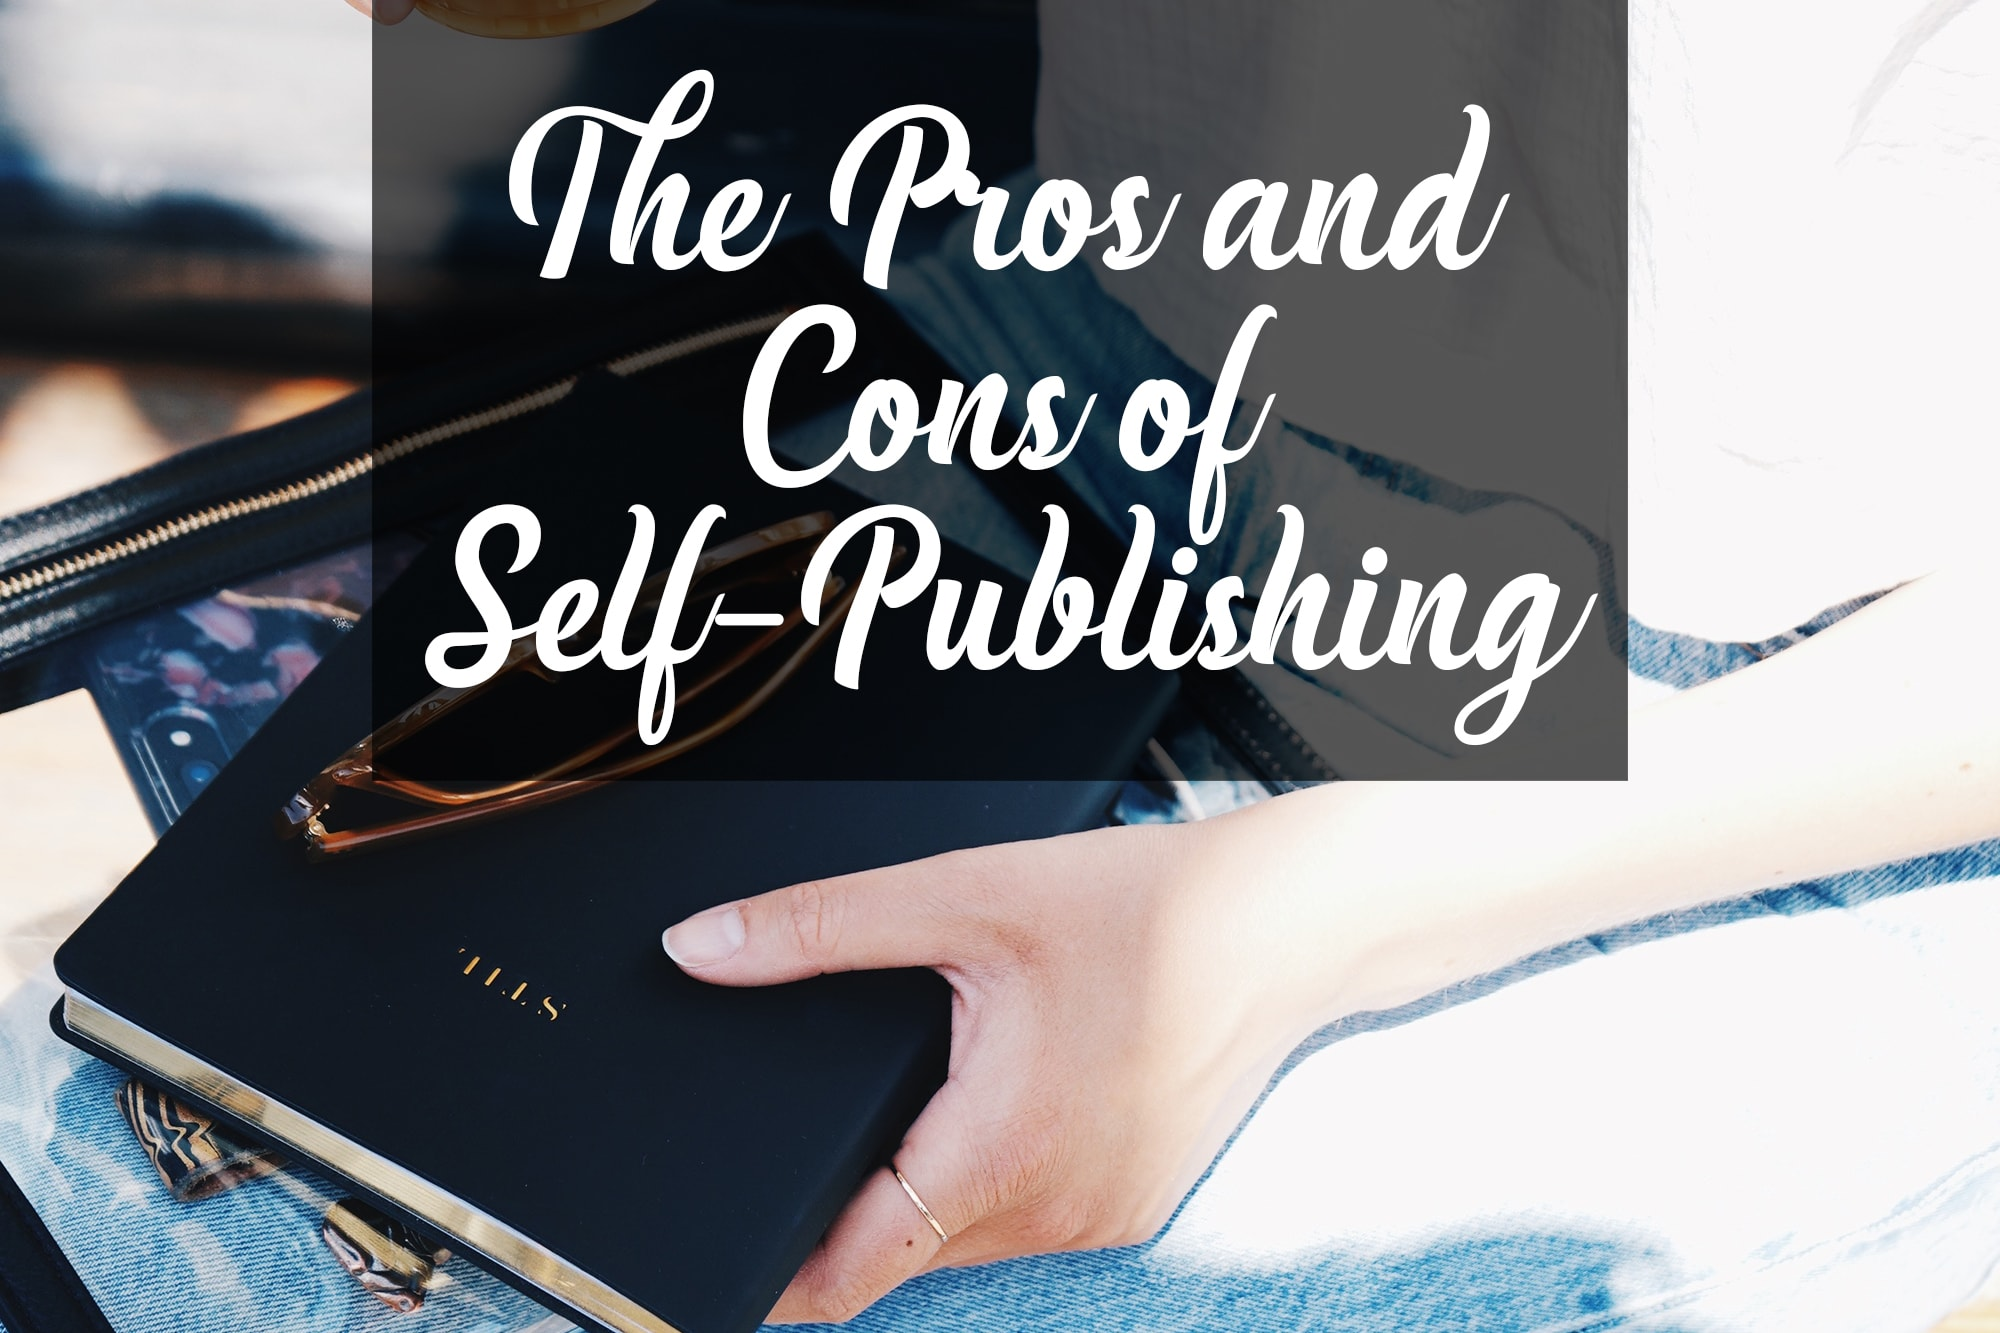 pros and cons of self-publishing